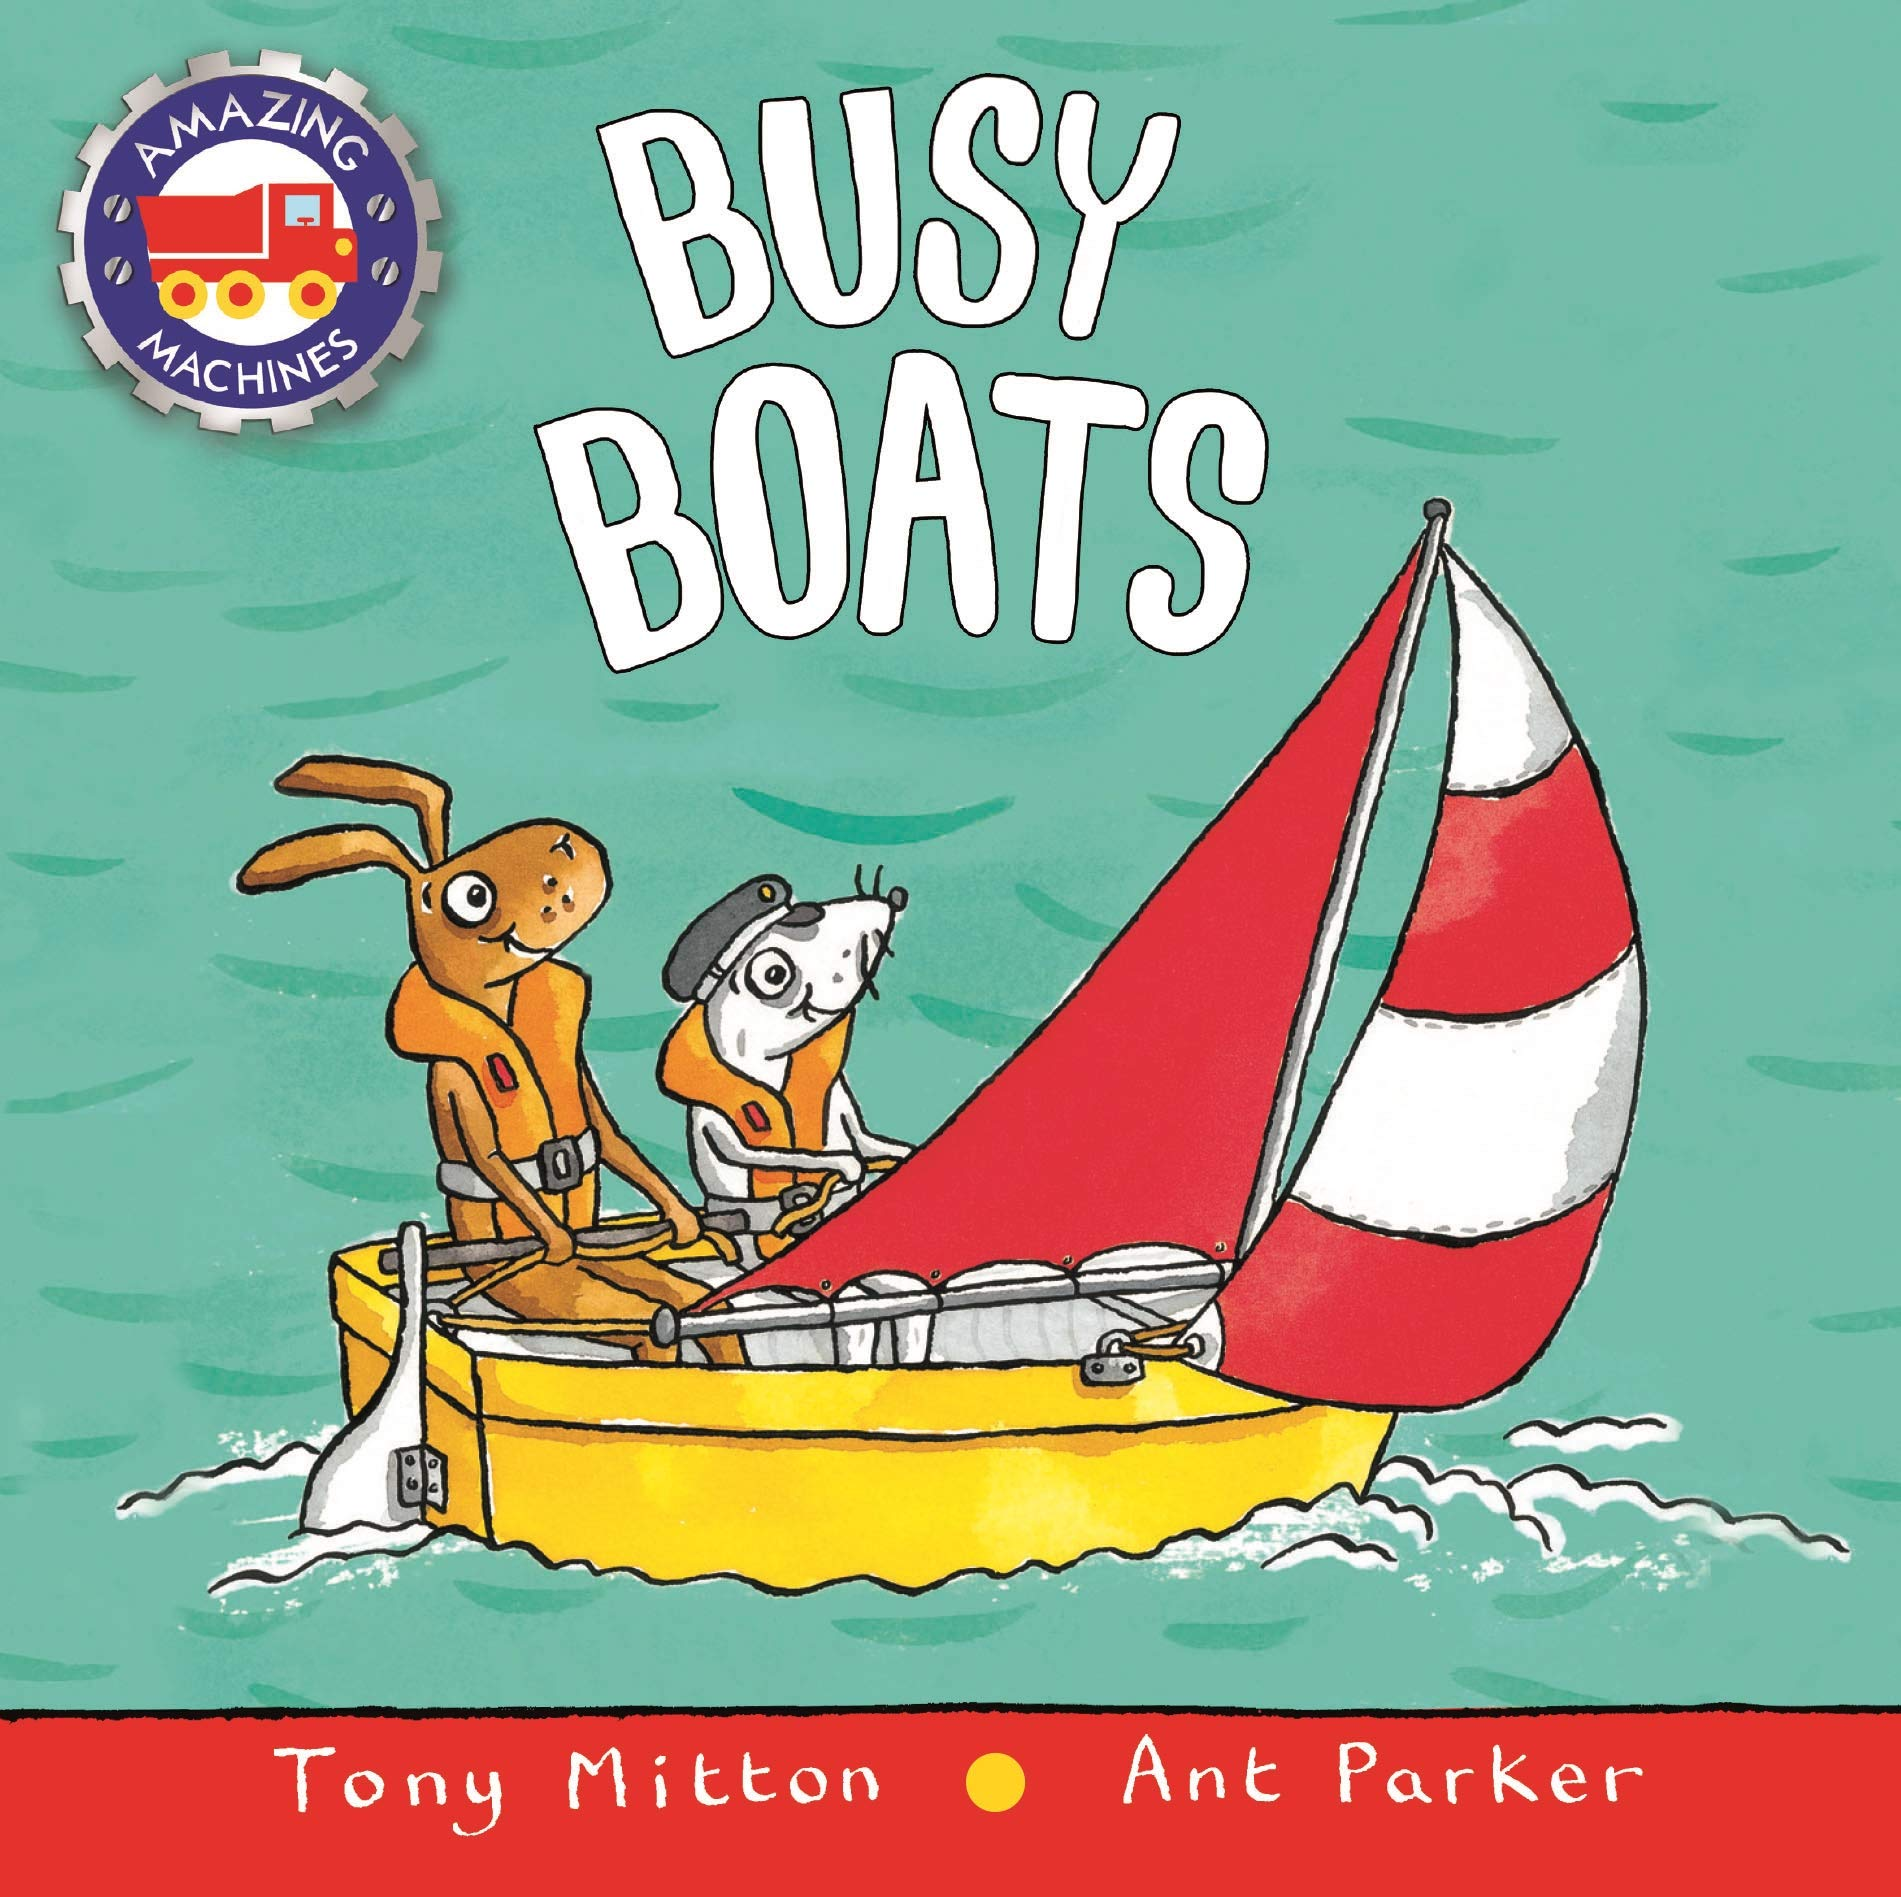 Busy Boats (Amazing Machines): Amazon.co.uk: Mitton, Tony, Parker ...